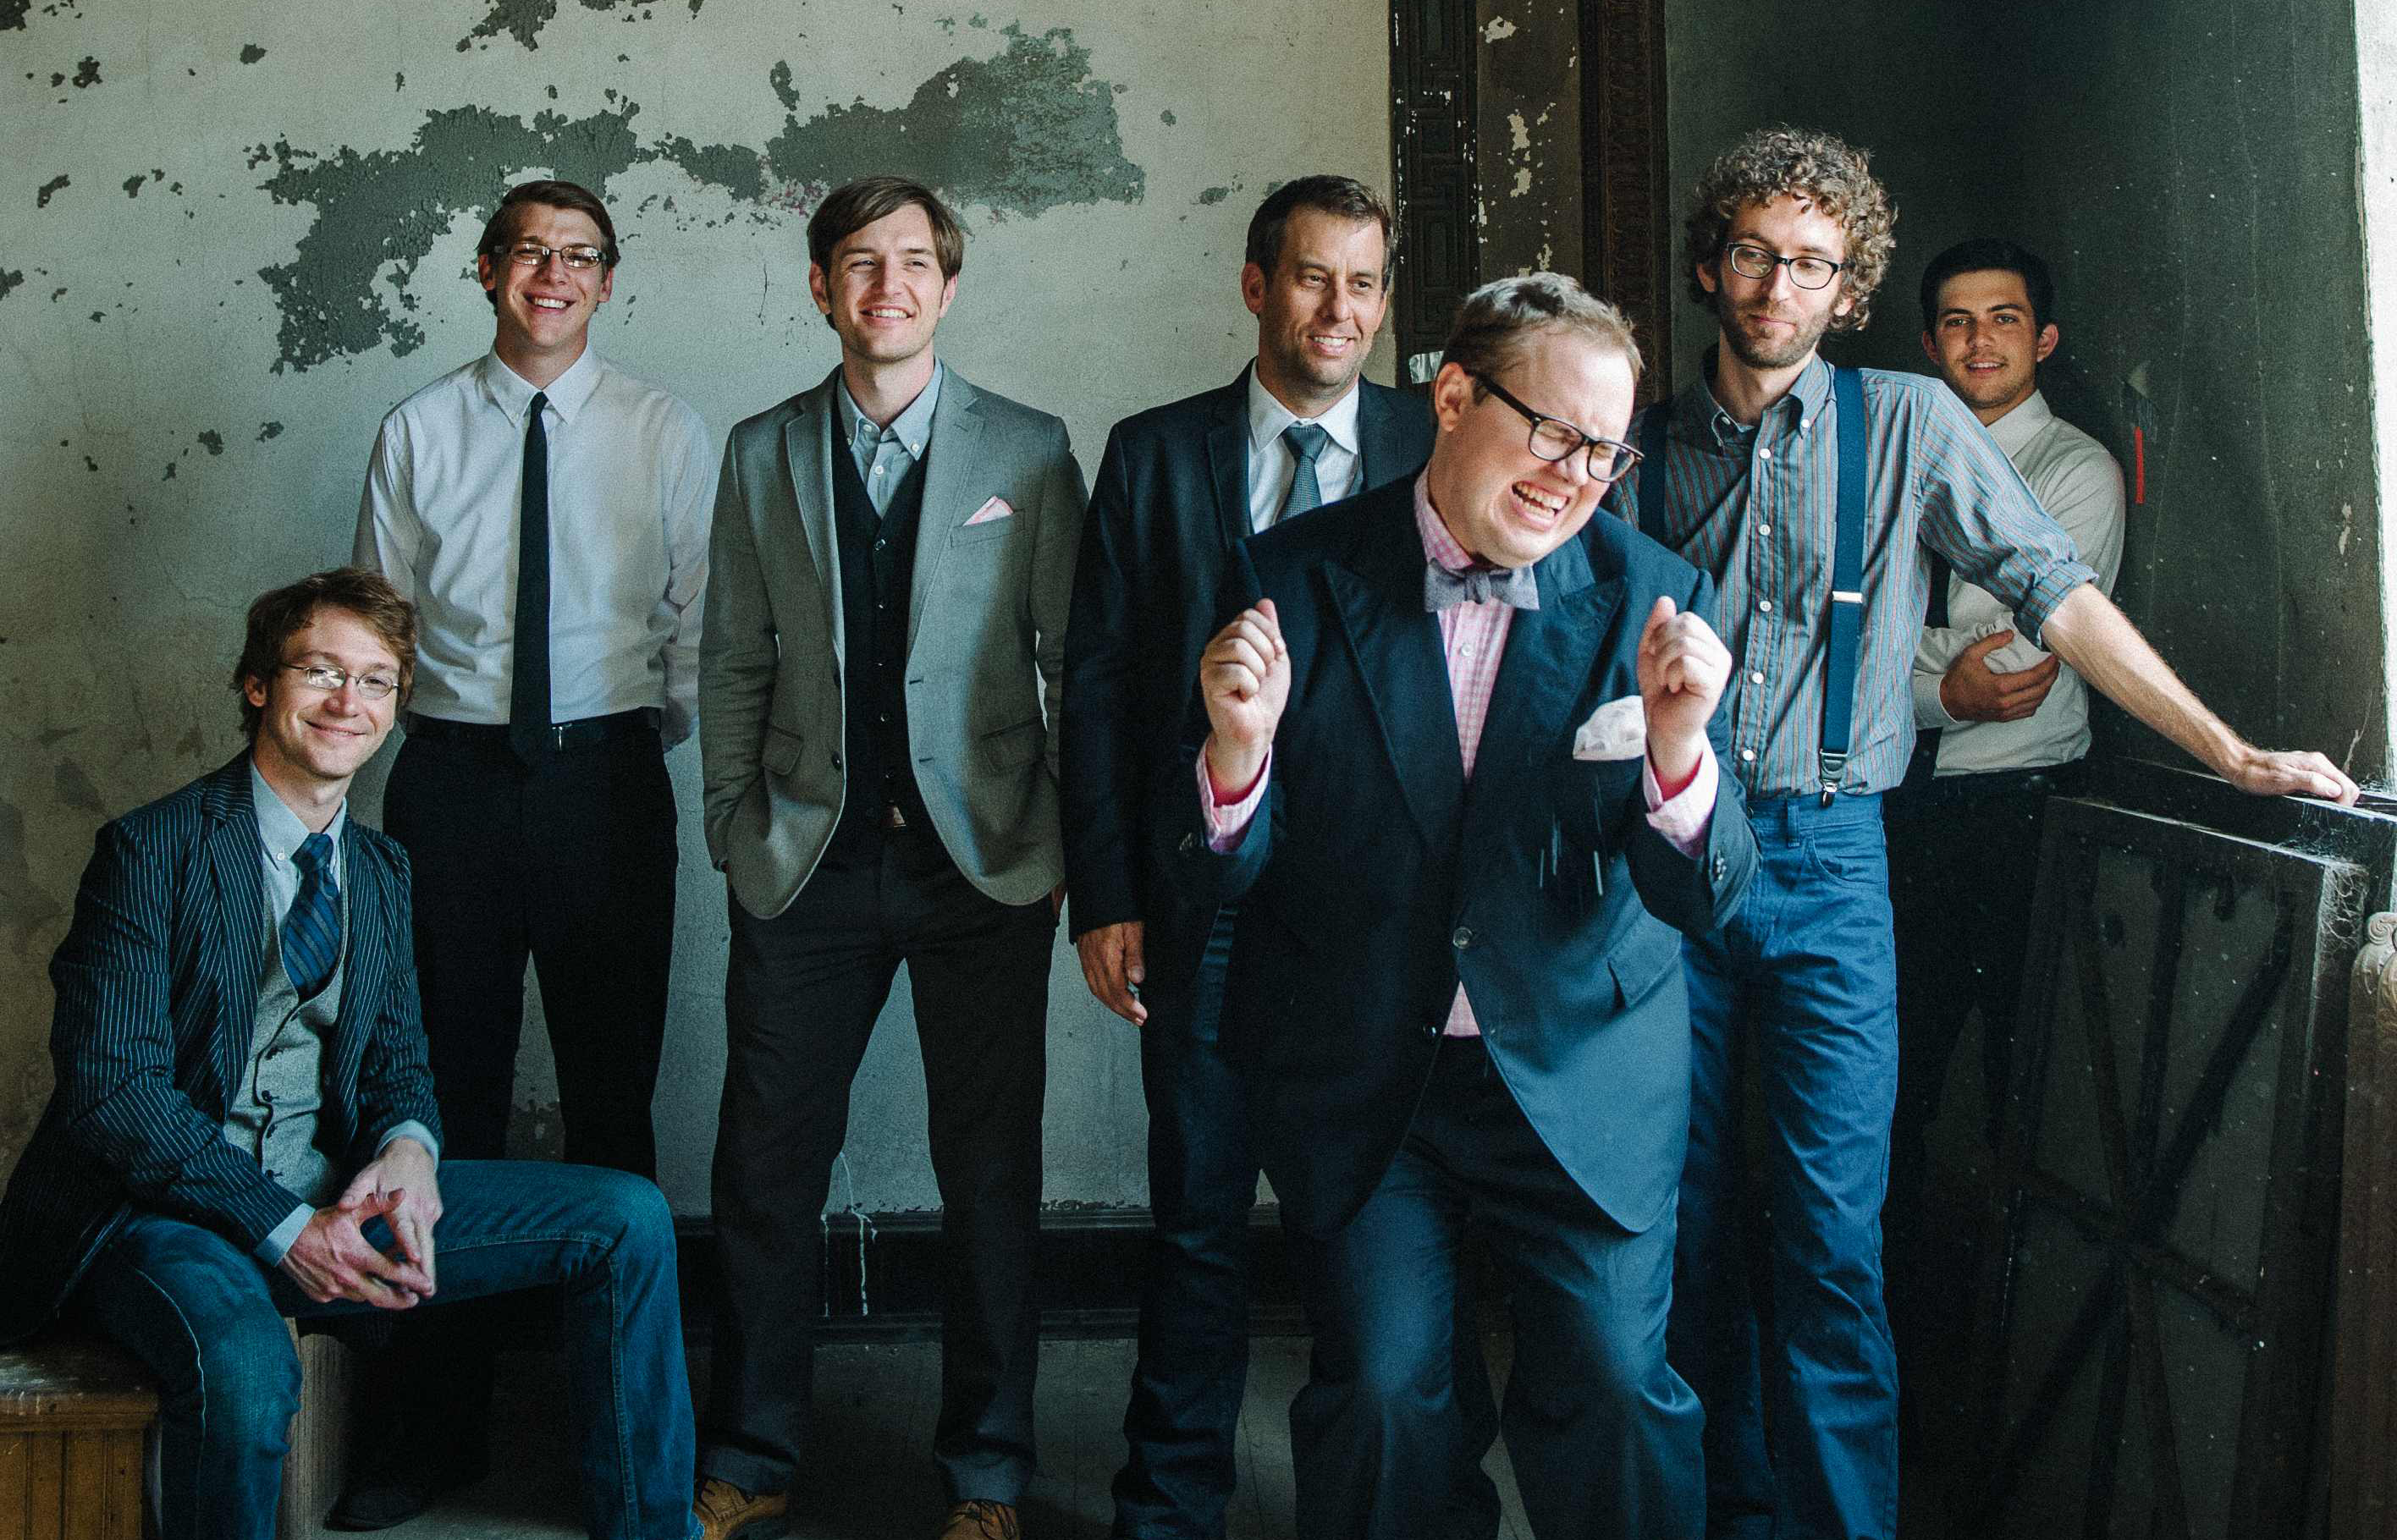 St. Paul and The Broken Bones will perform during the Art of Wine event on July 19. (Submitted photo)